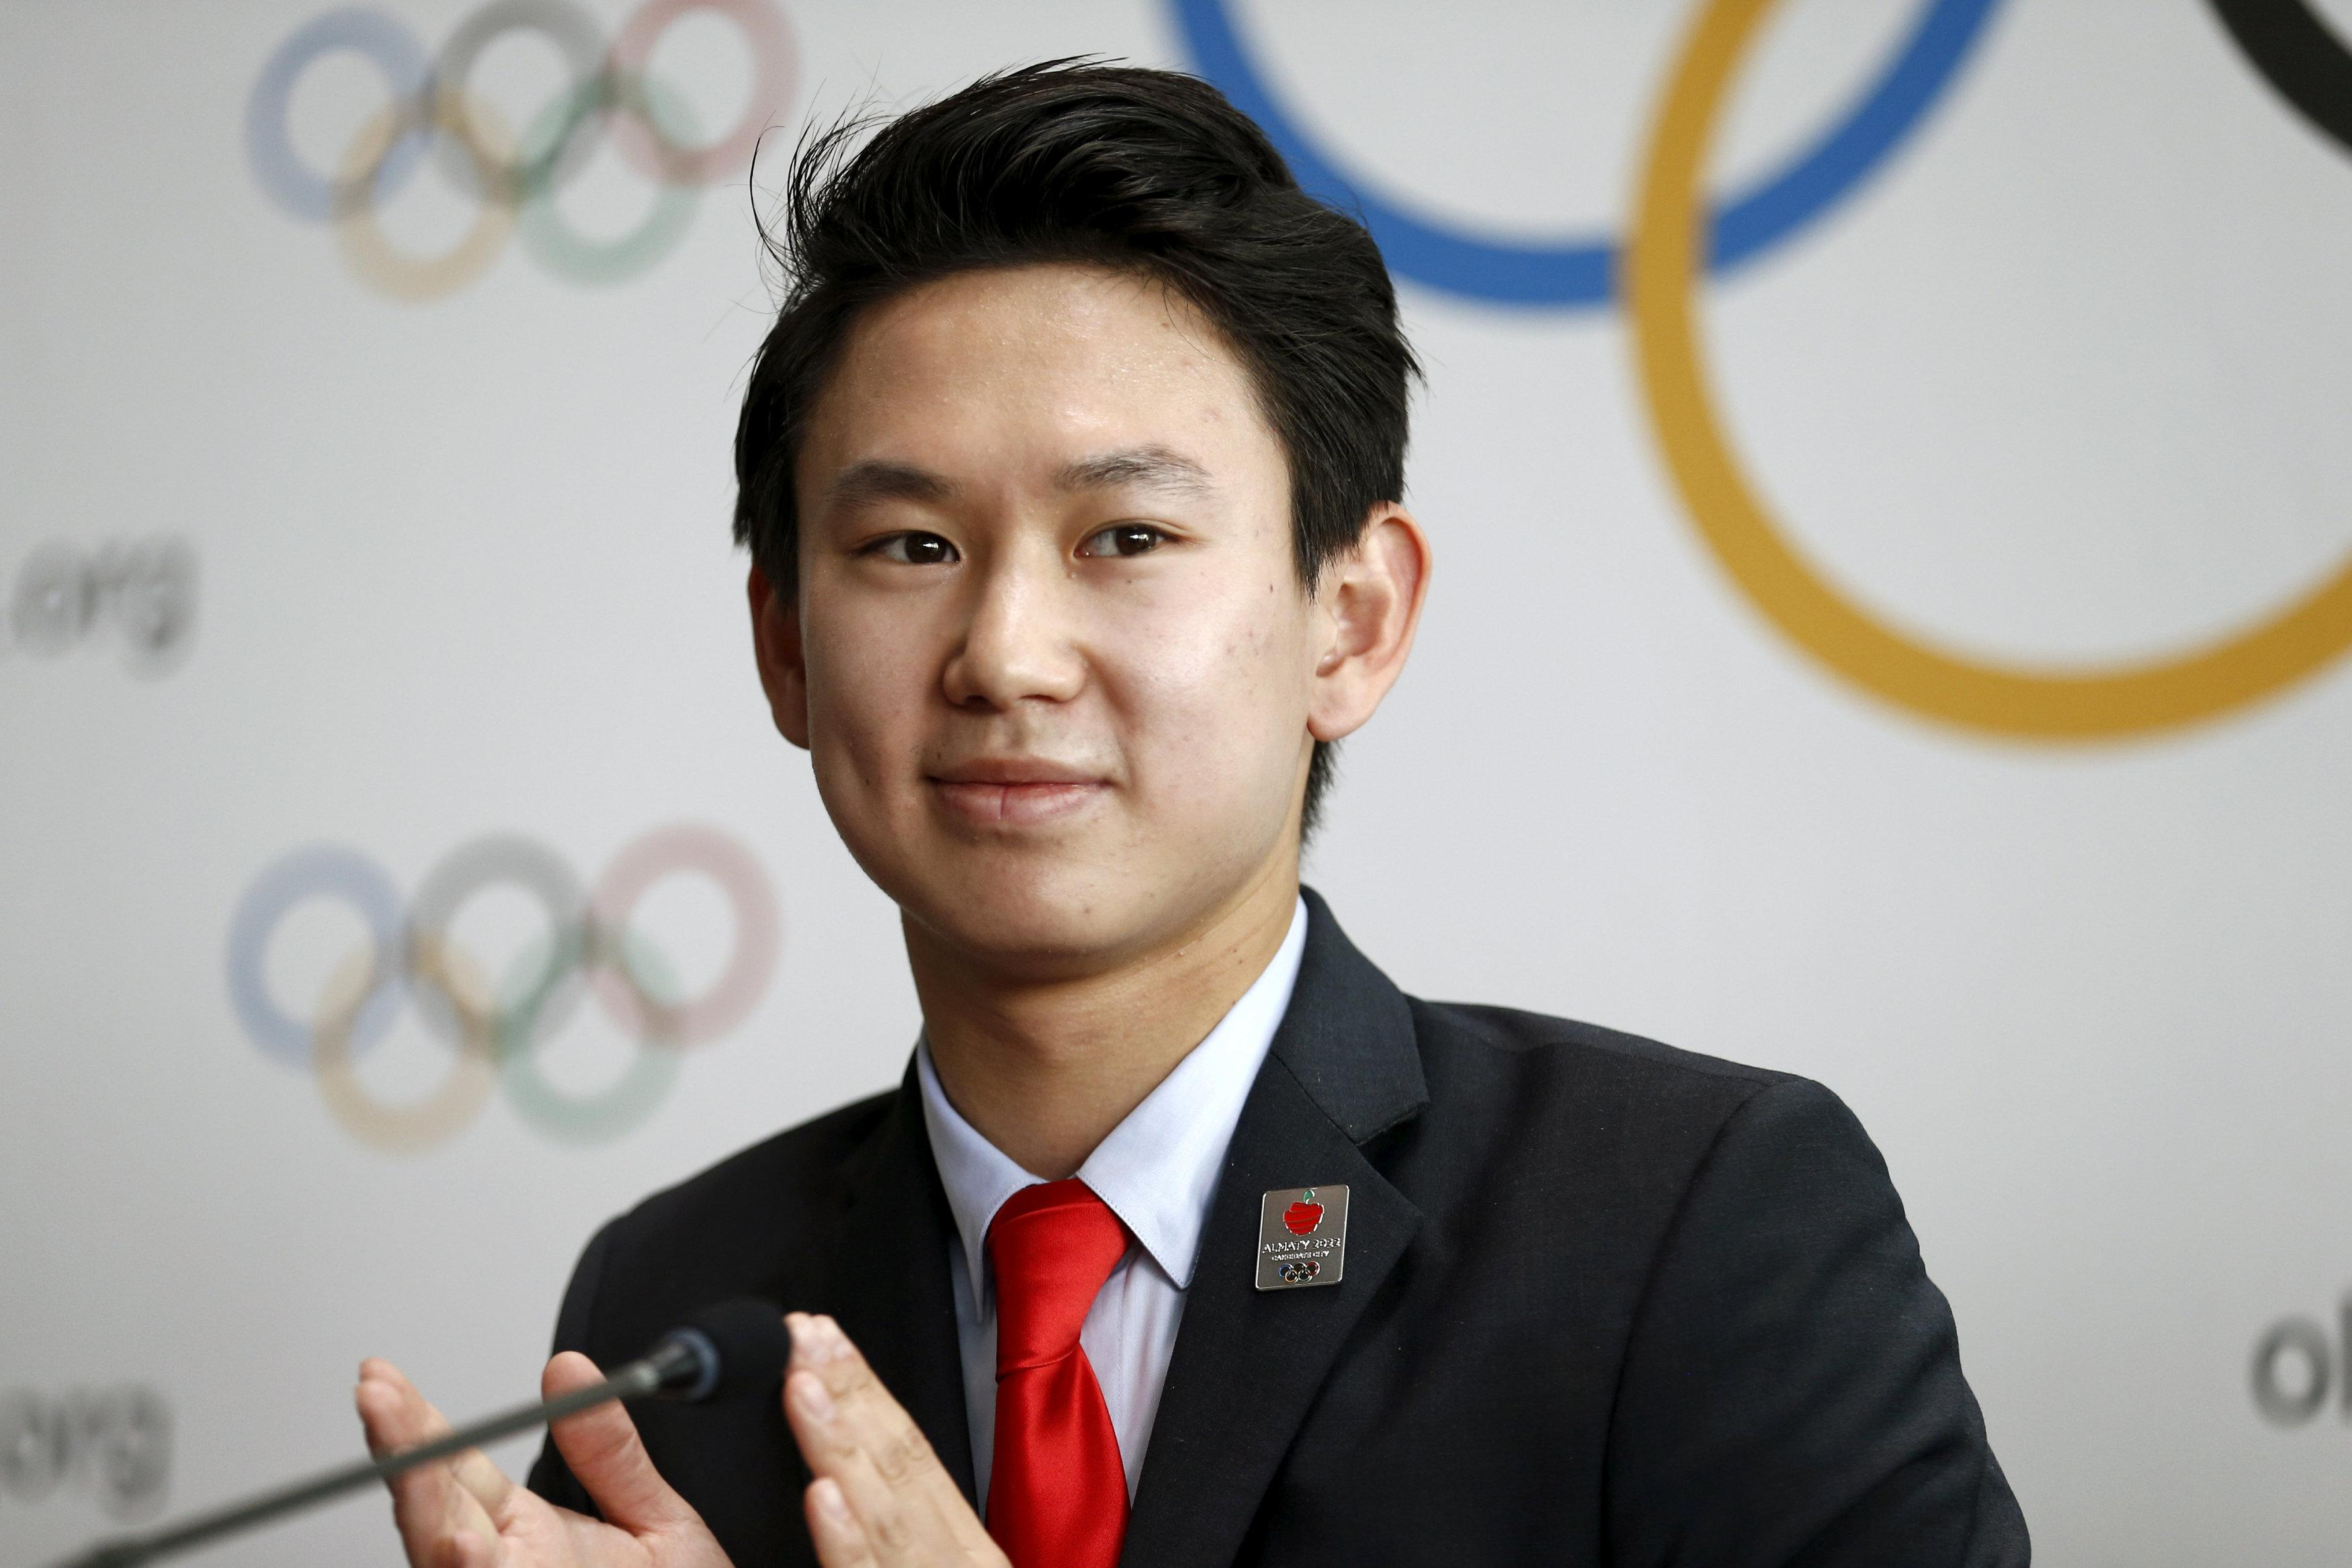 The world of sport has been left stunned after figure skater Denis Ten was killed by thieves trying to steal his car mirrors